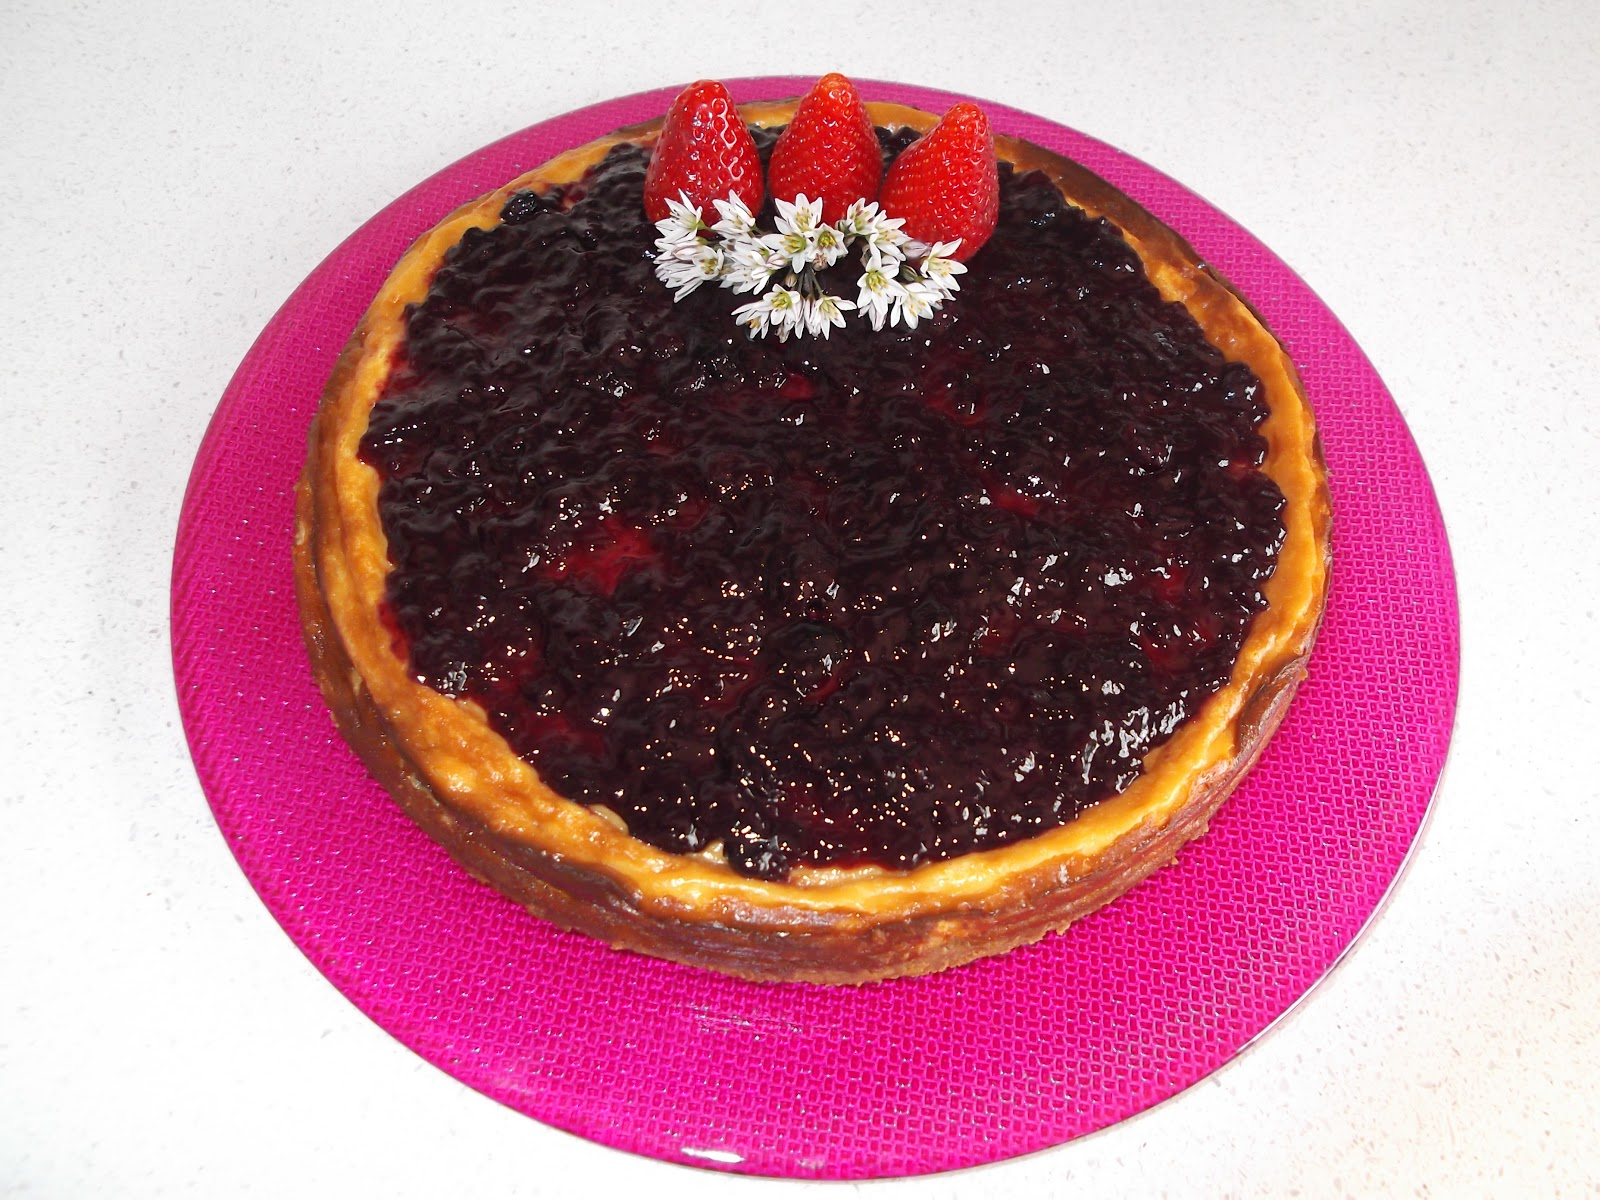 Platos y dulces new york cheese cake for Platos dulces